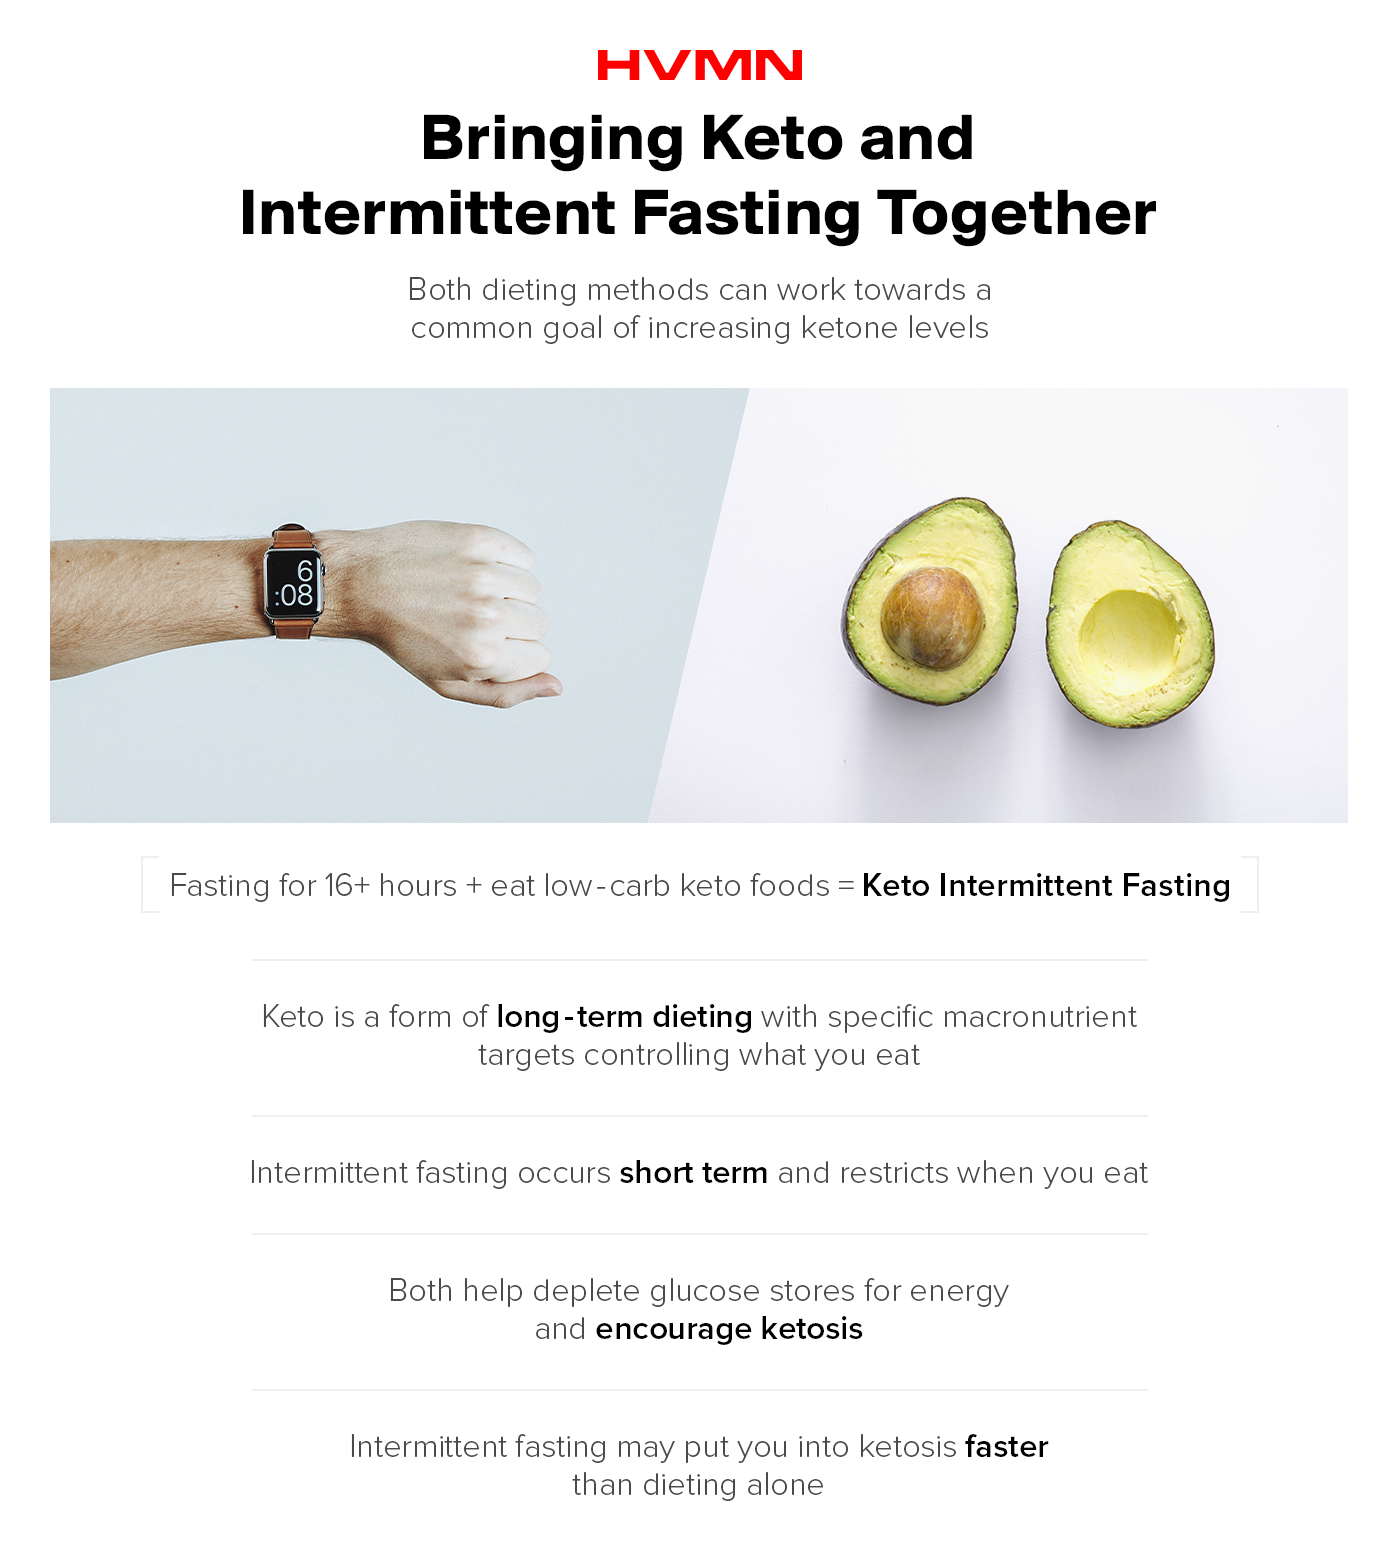 An image of a wristwatch and an avocado, representing the bringing together of keto and intermittent fasting